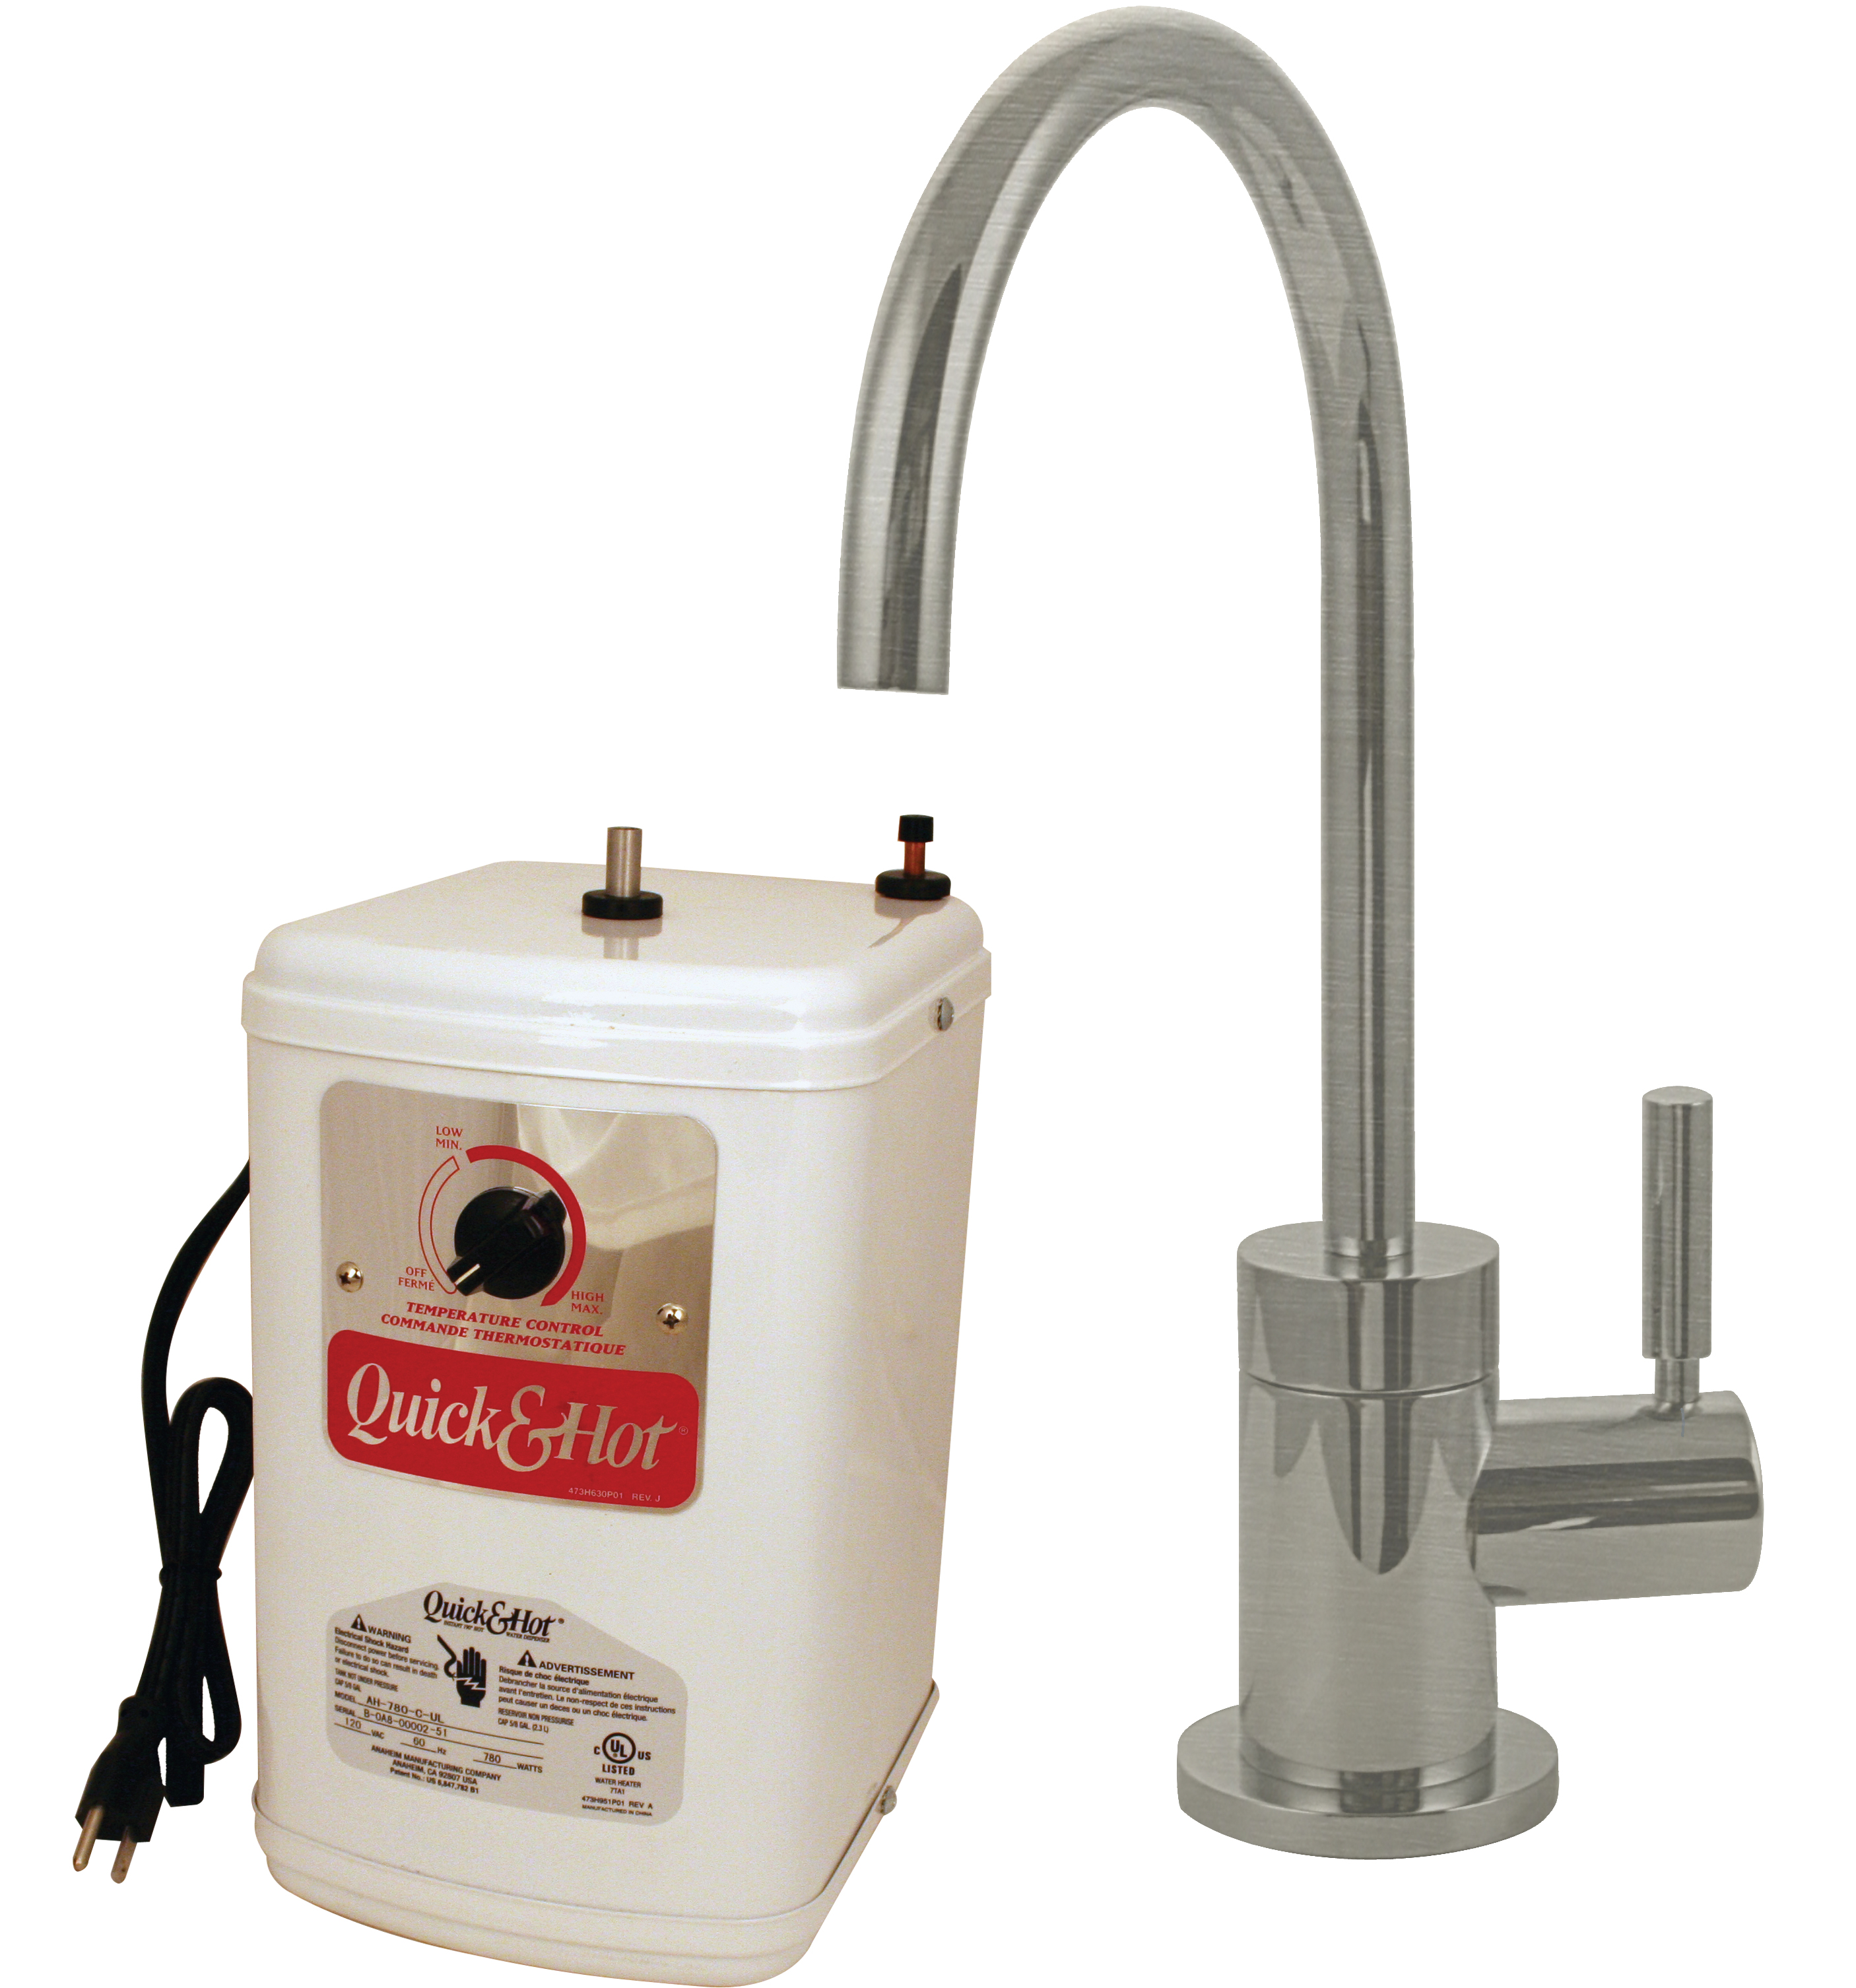 cold water filter faucet. Contemporary 1 Handle Hot And Cold Water Dispenser Faucet With Instant  Tank In Satin Nickel